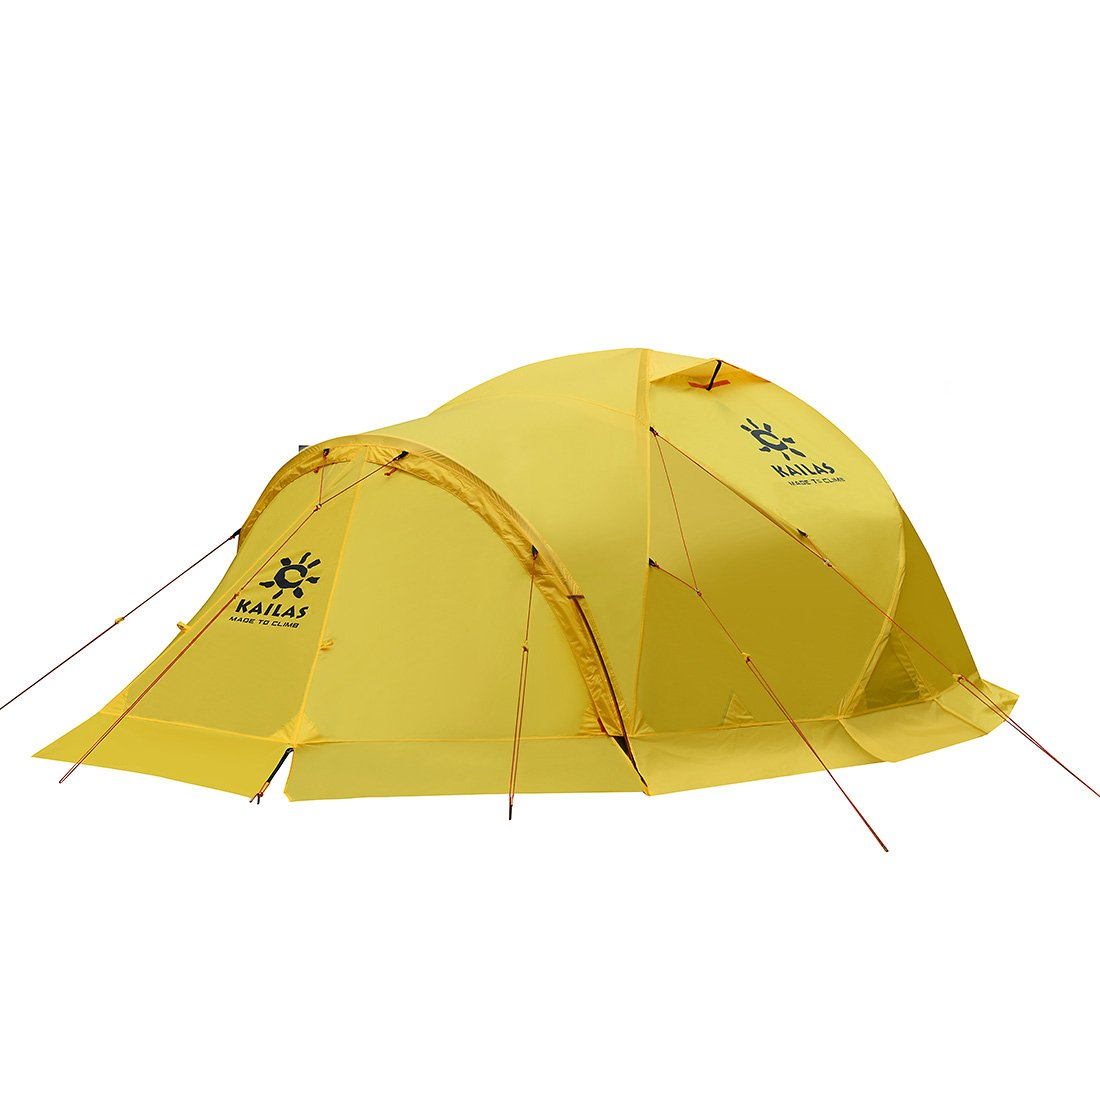 KAILAS X3 Alpine Tent Lightweight for Polar Region Alpine Extreme Condition Backpacking Camping (3-4 Person) by KAILAS